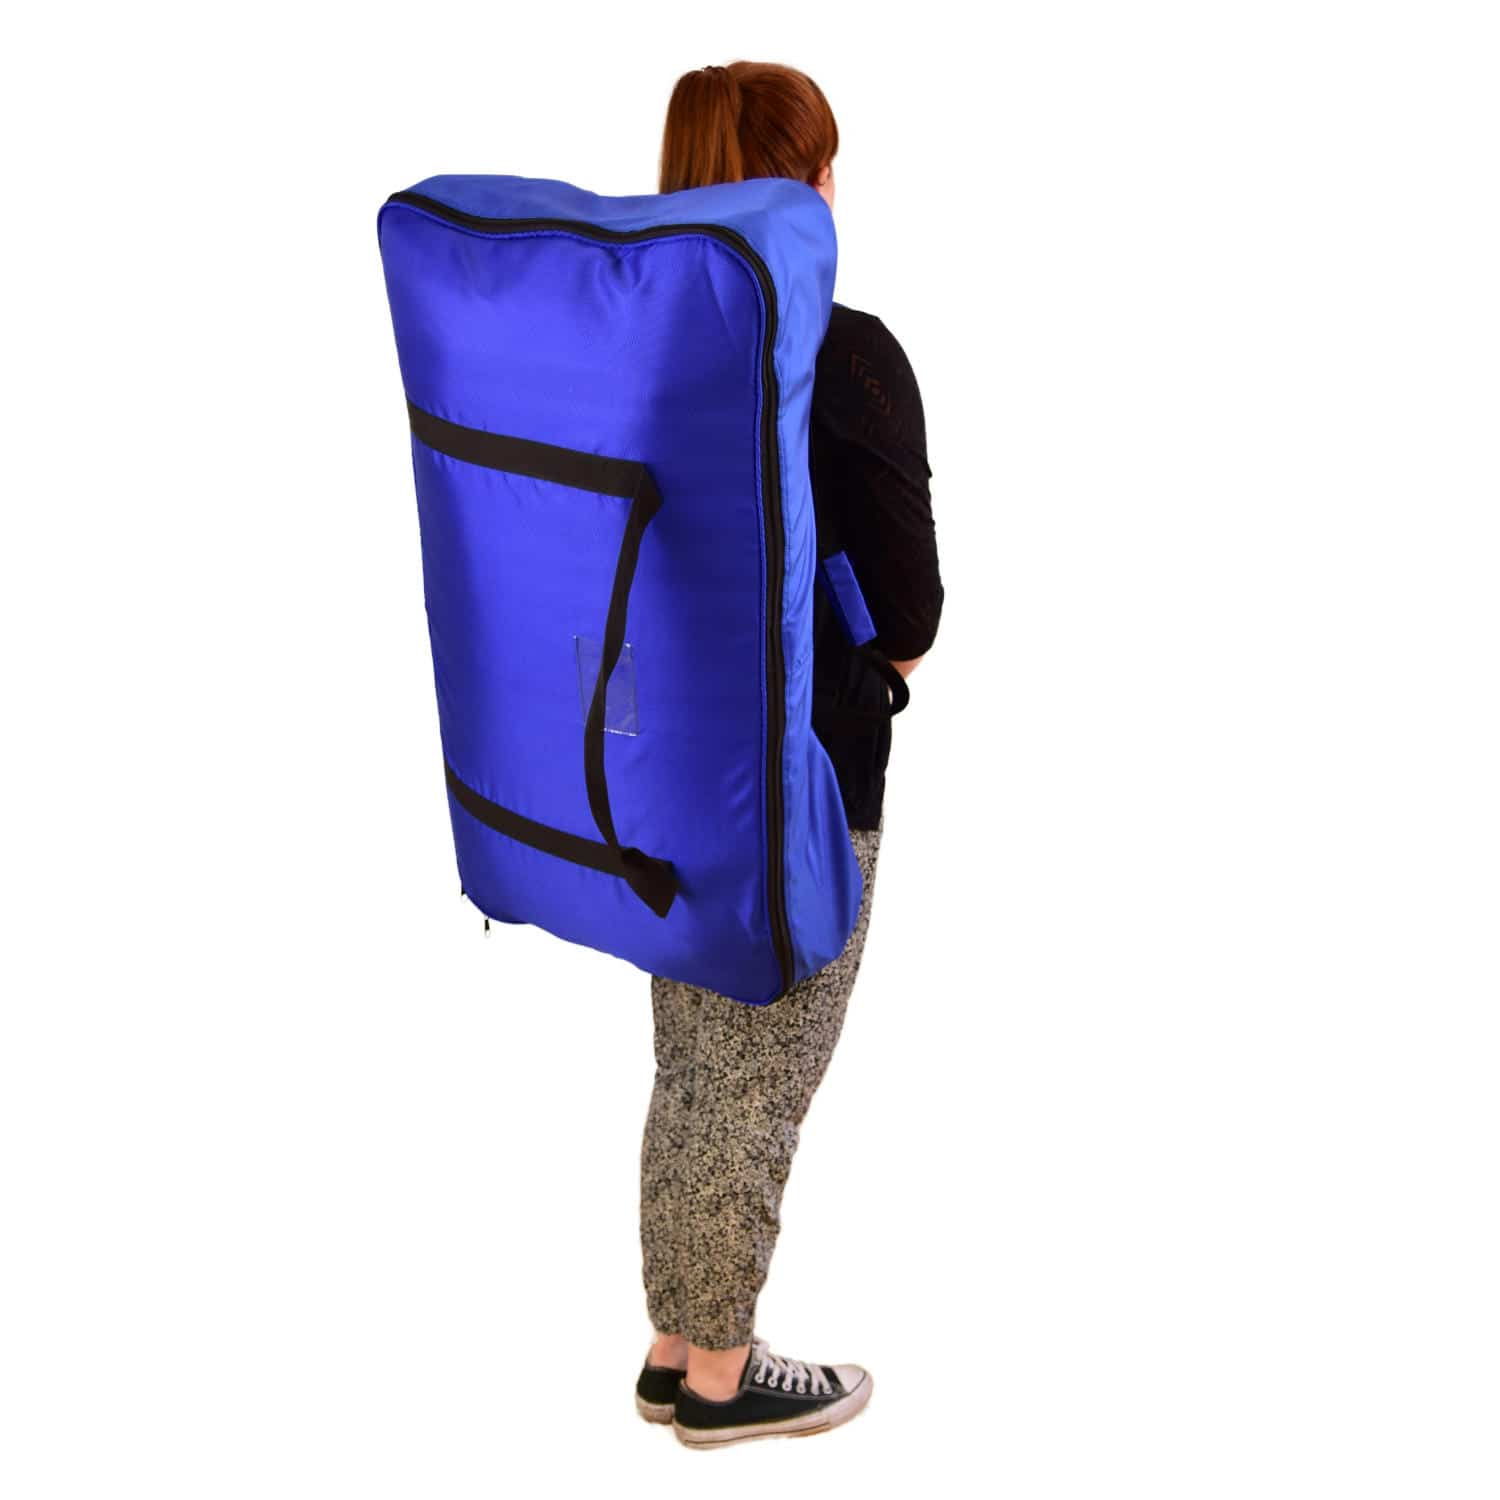 https://static.praxisdienst.com/out/pictures/generated/product/5/1500_1500_100/138114_teqler_vakuummatratze_backpack_web.jpg